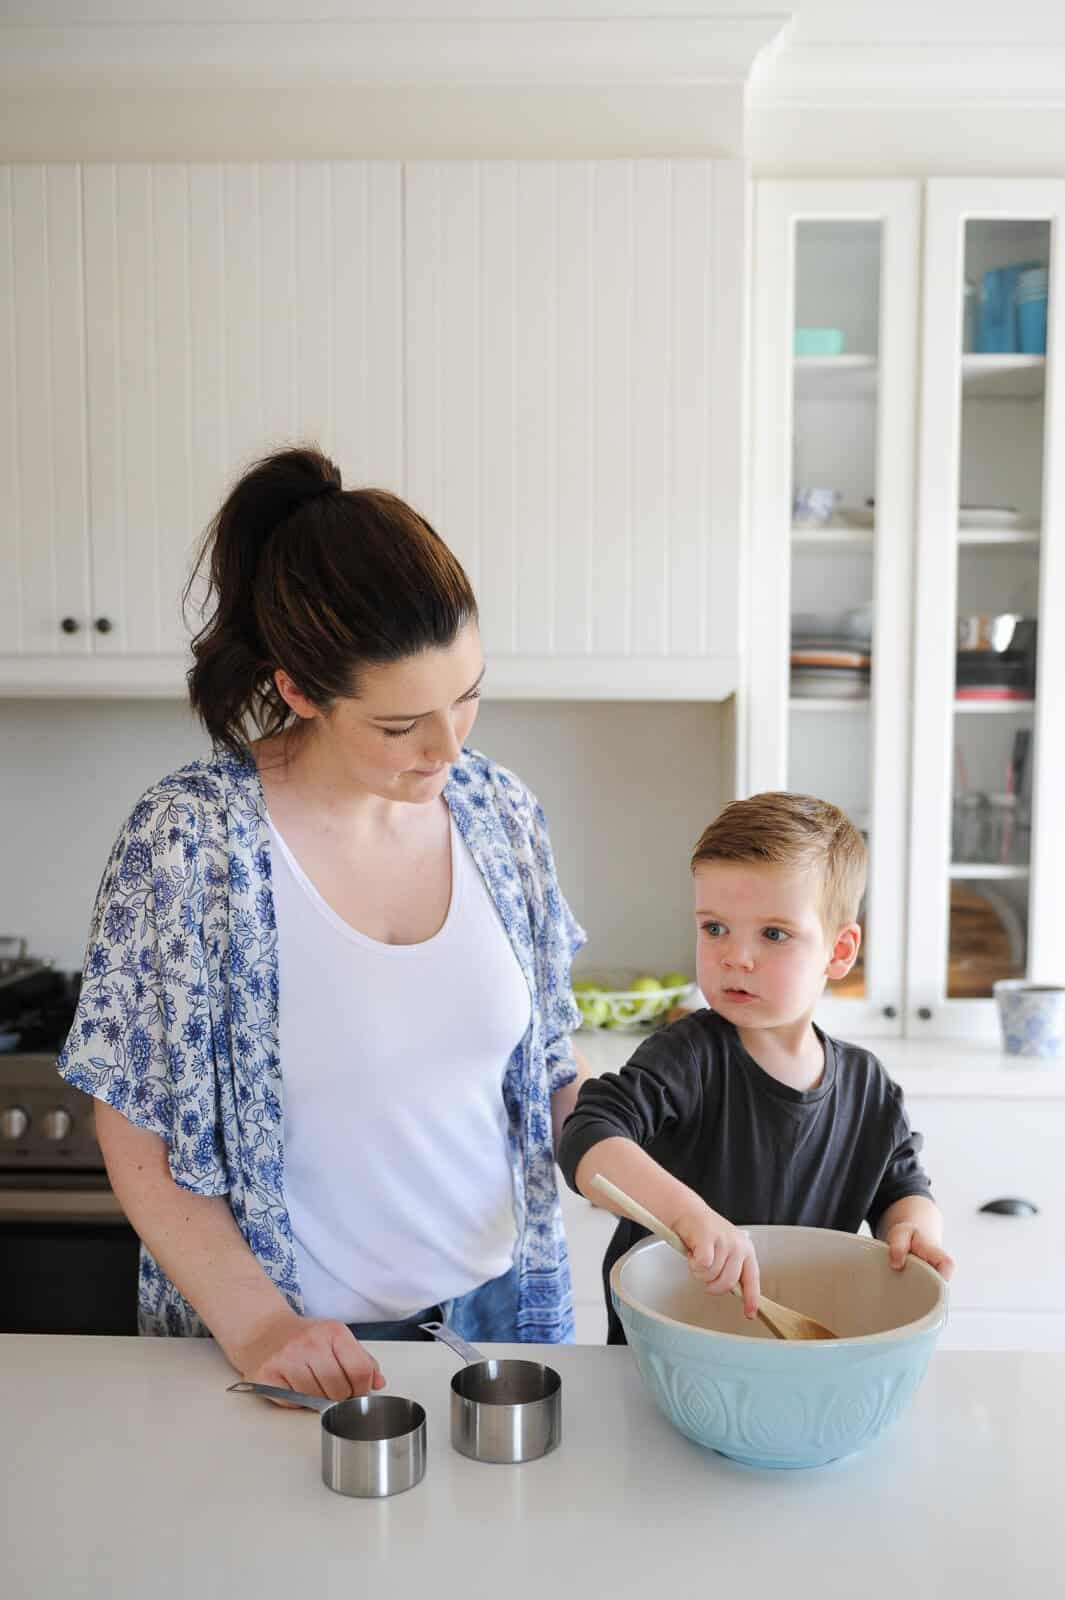 cooking-with-kids-mum-and-boy-in-kitchen